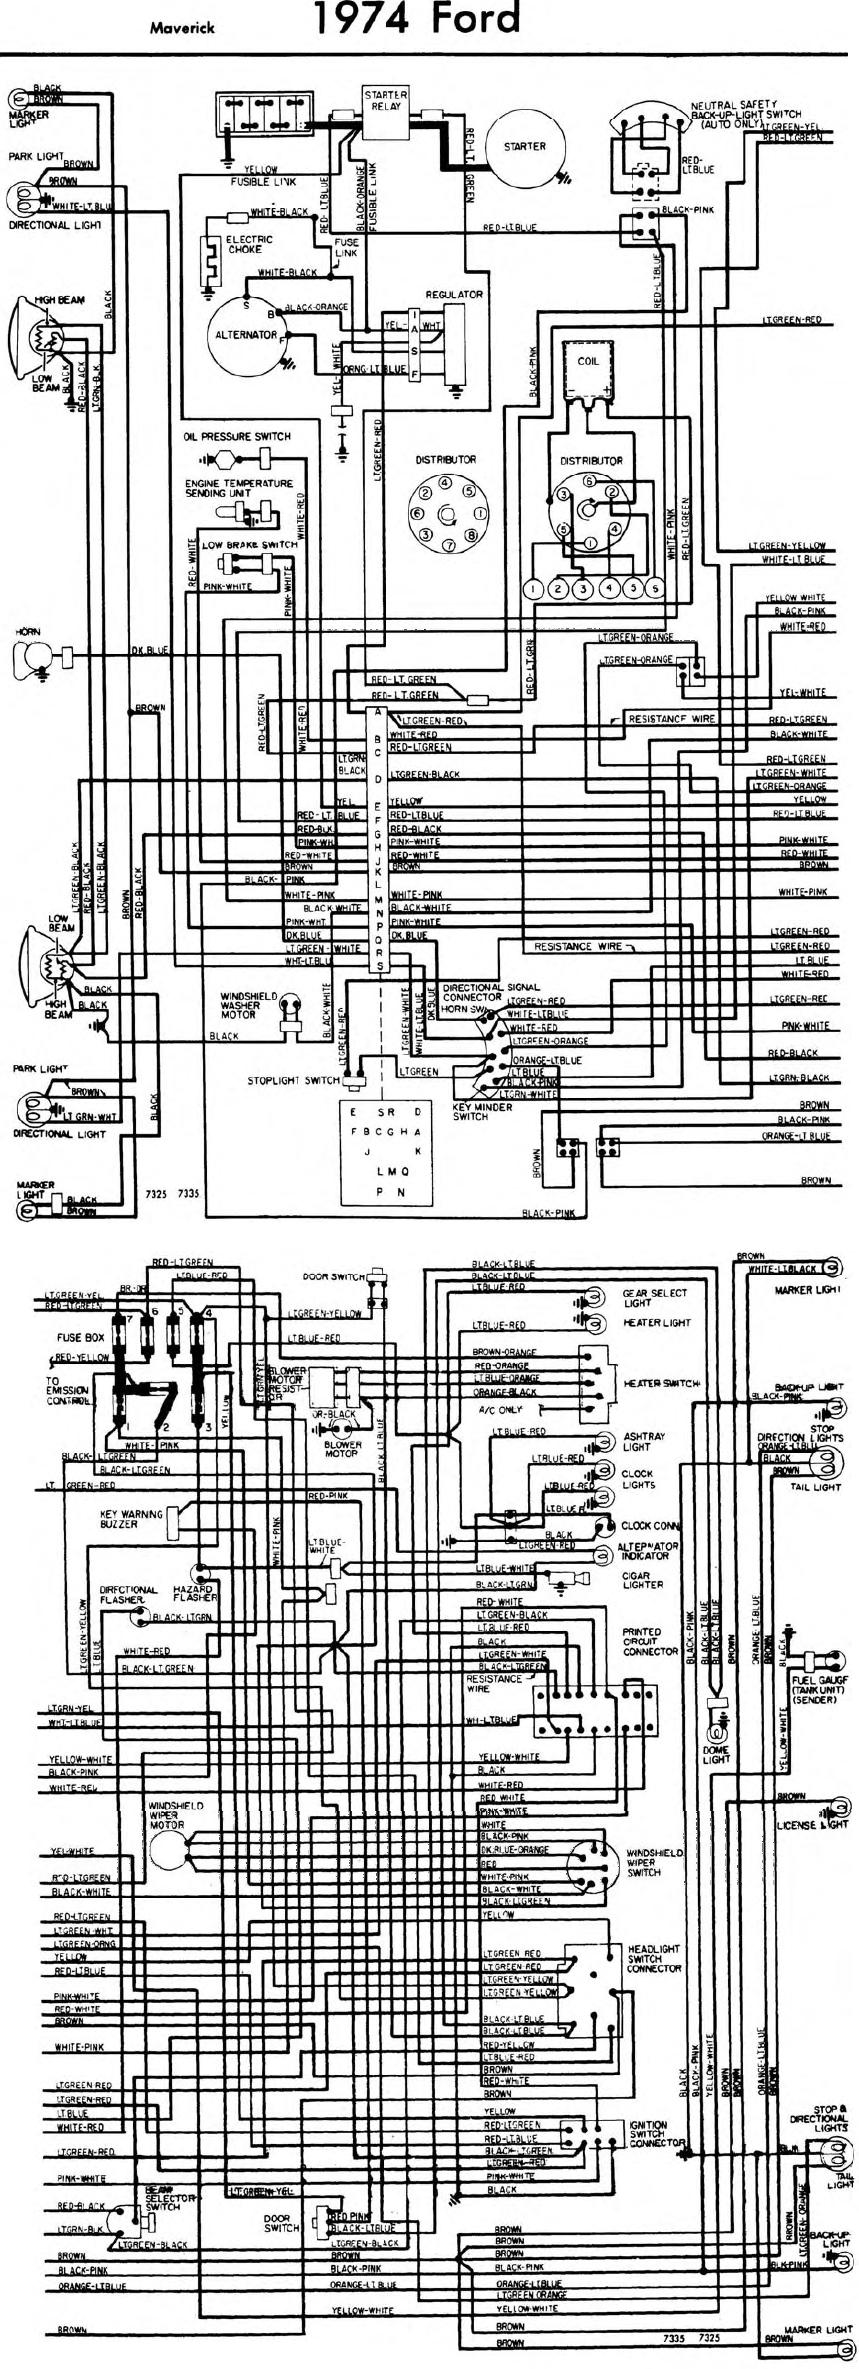 hight resolution of 1970 ford maverick wiring diagram wiring schematic data 95 ford starter solenoid wiring diagram 1970 ford